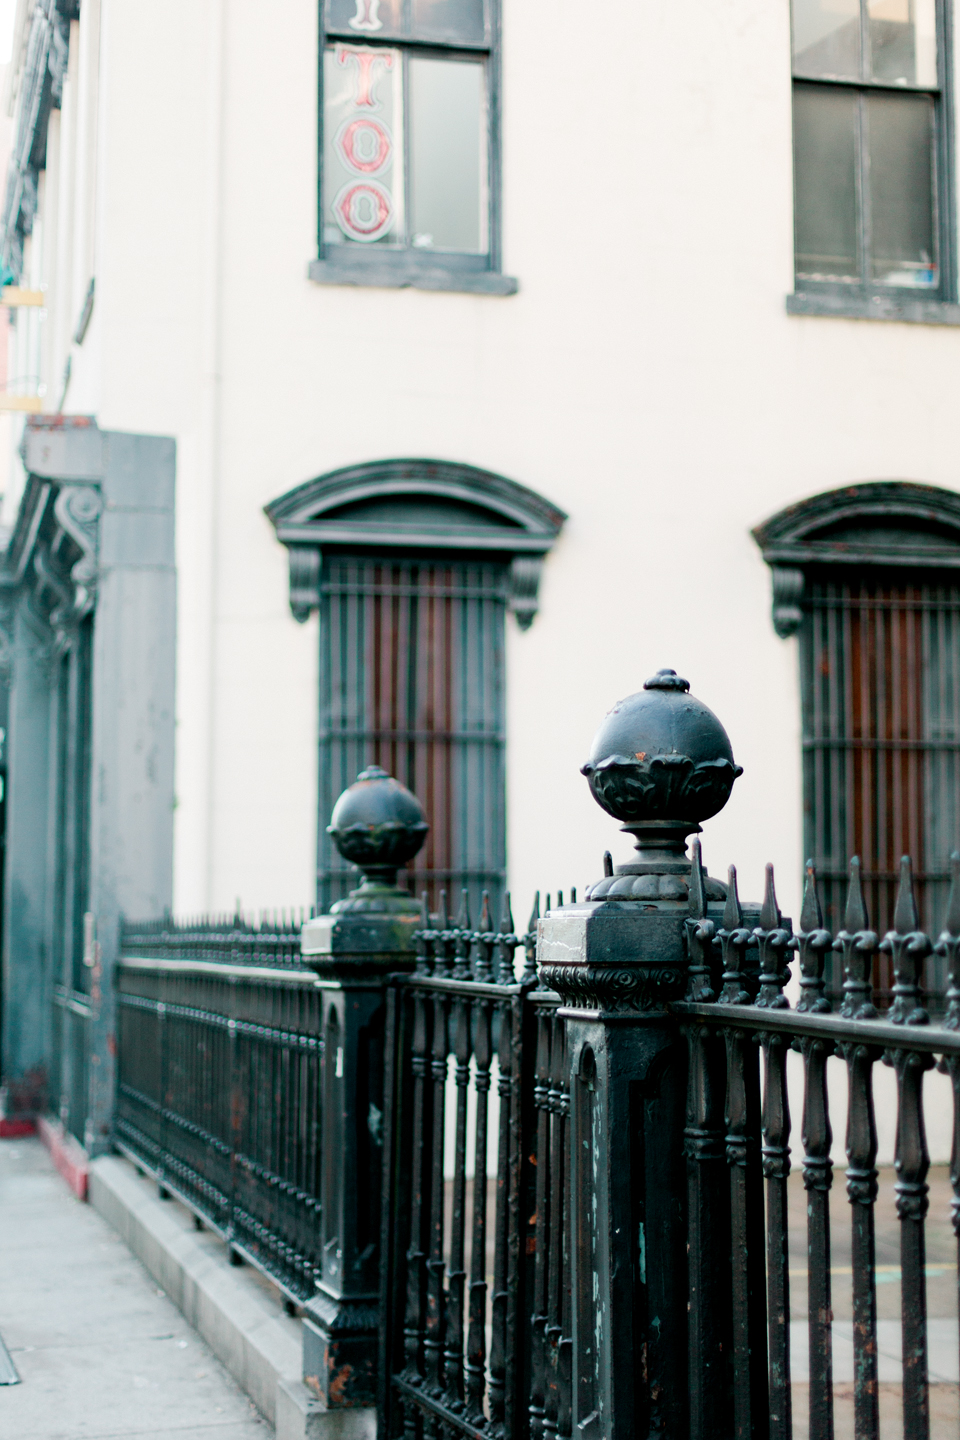 Image of downtown historic Savannah, Georgia.  Iron fence with architectural posts and a historic building beside it.